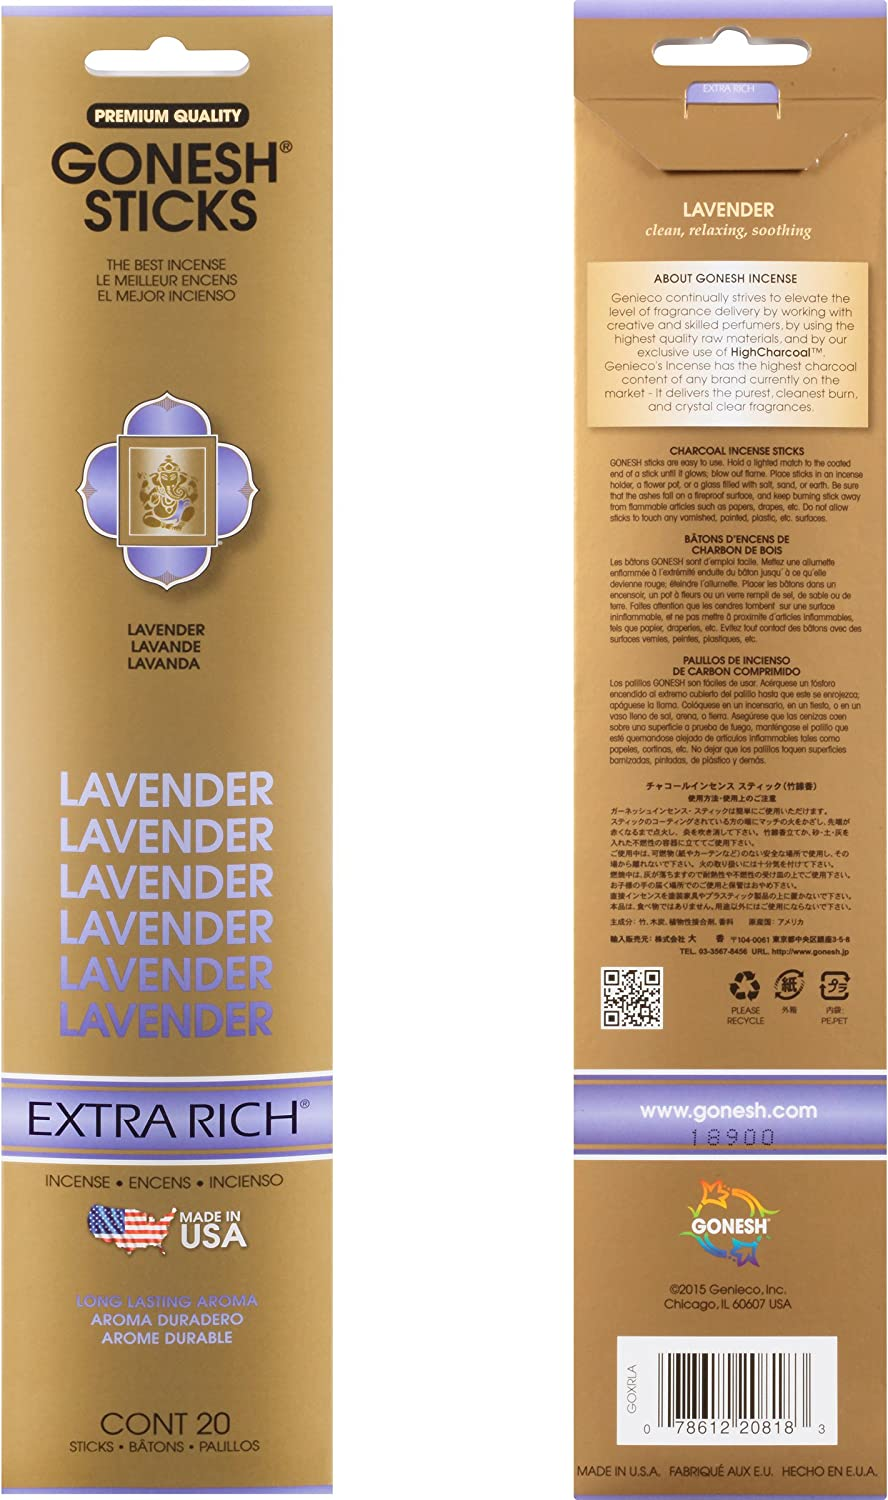 Gonesh Collection Lavender 4 Pack-Extra Rich Incense 80 Count